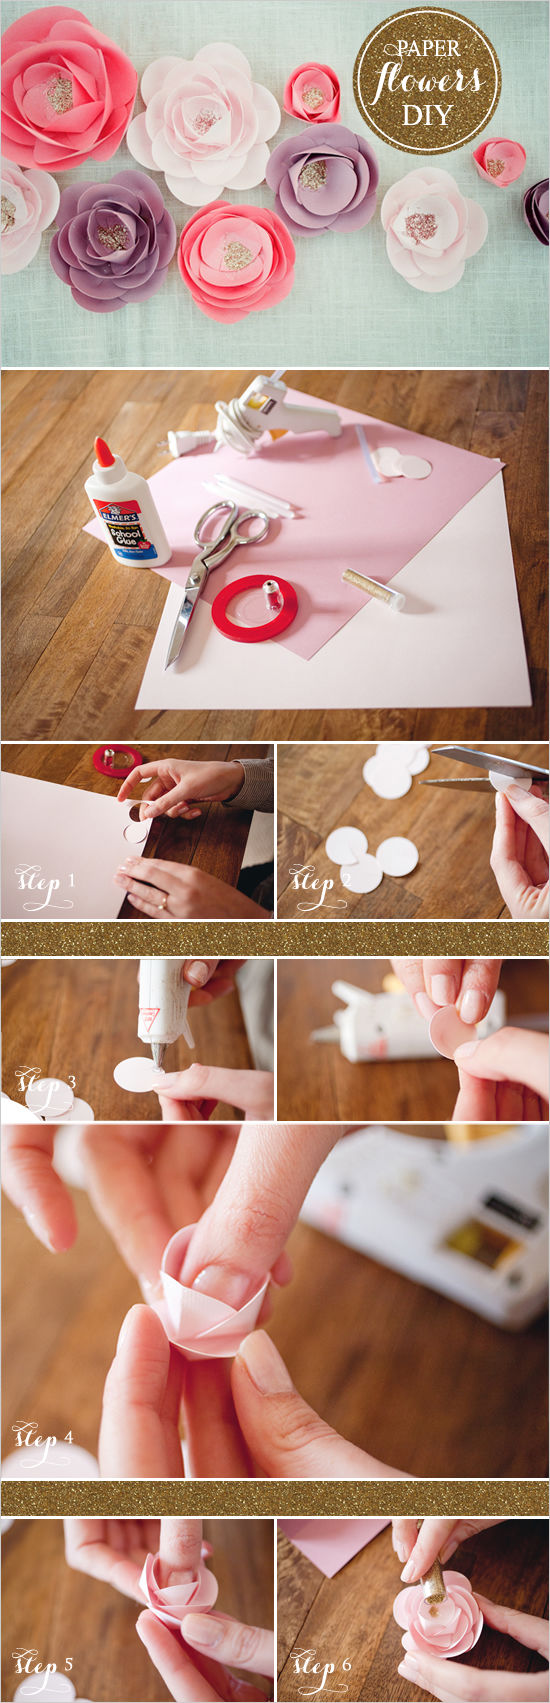 Diy paper flower tutorial pictures photos and images for for Flower making at home